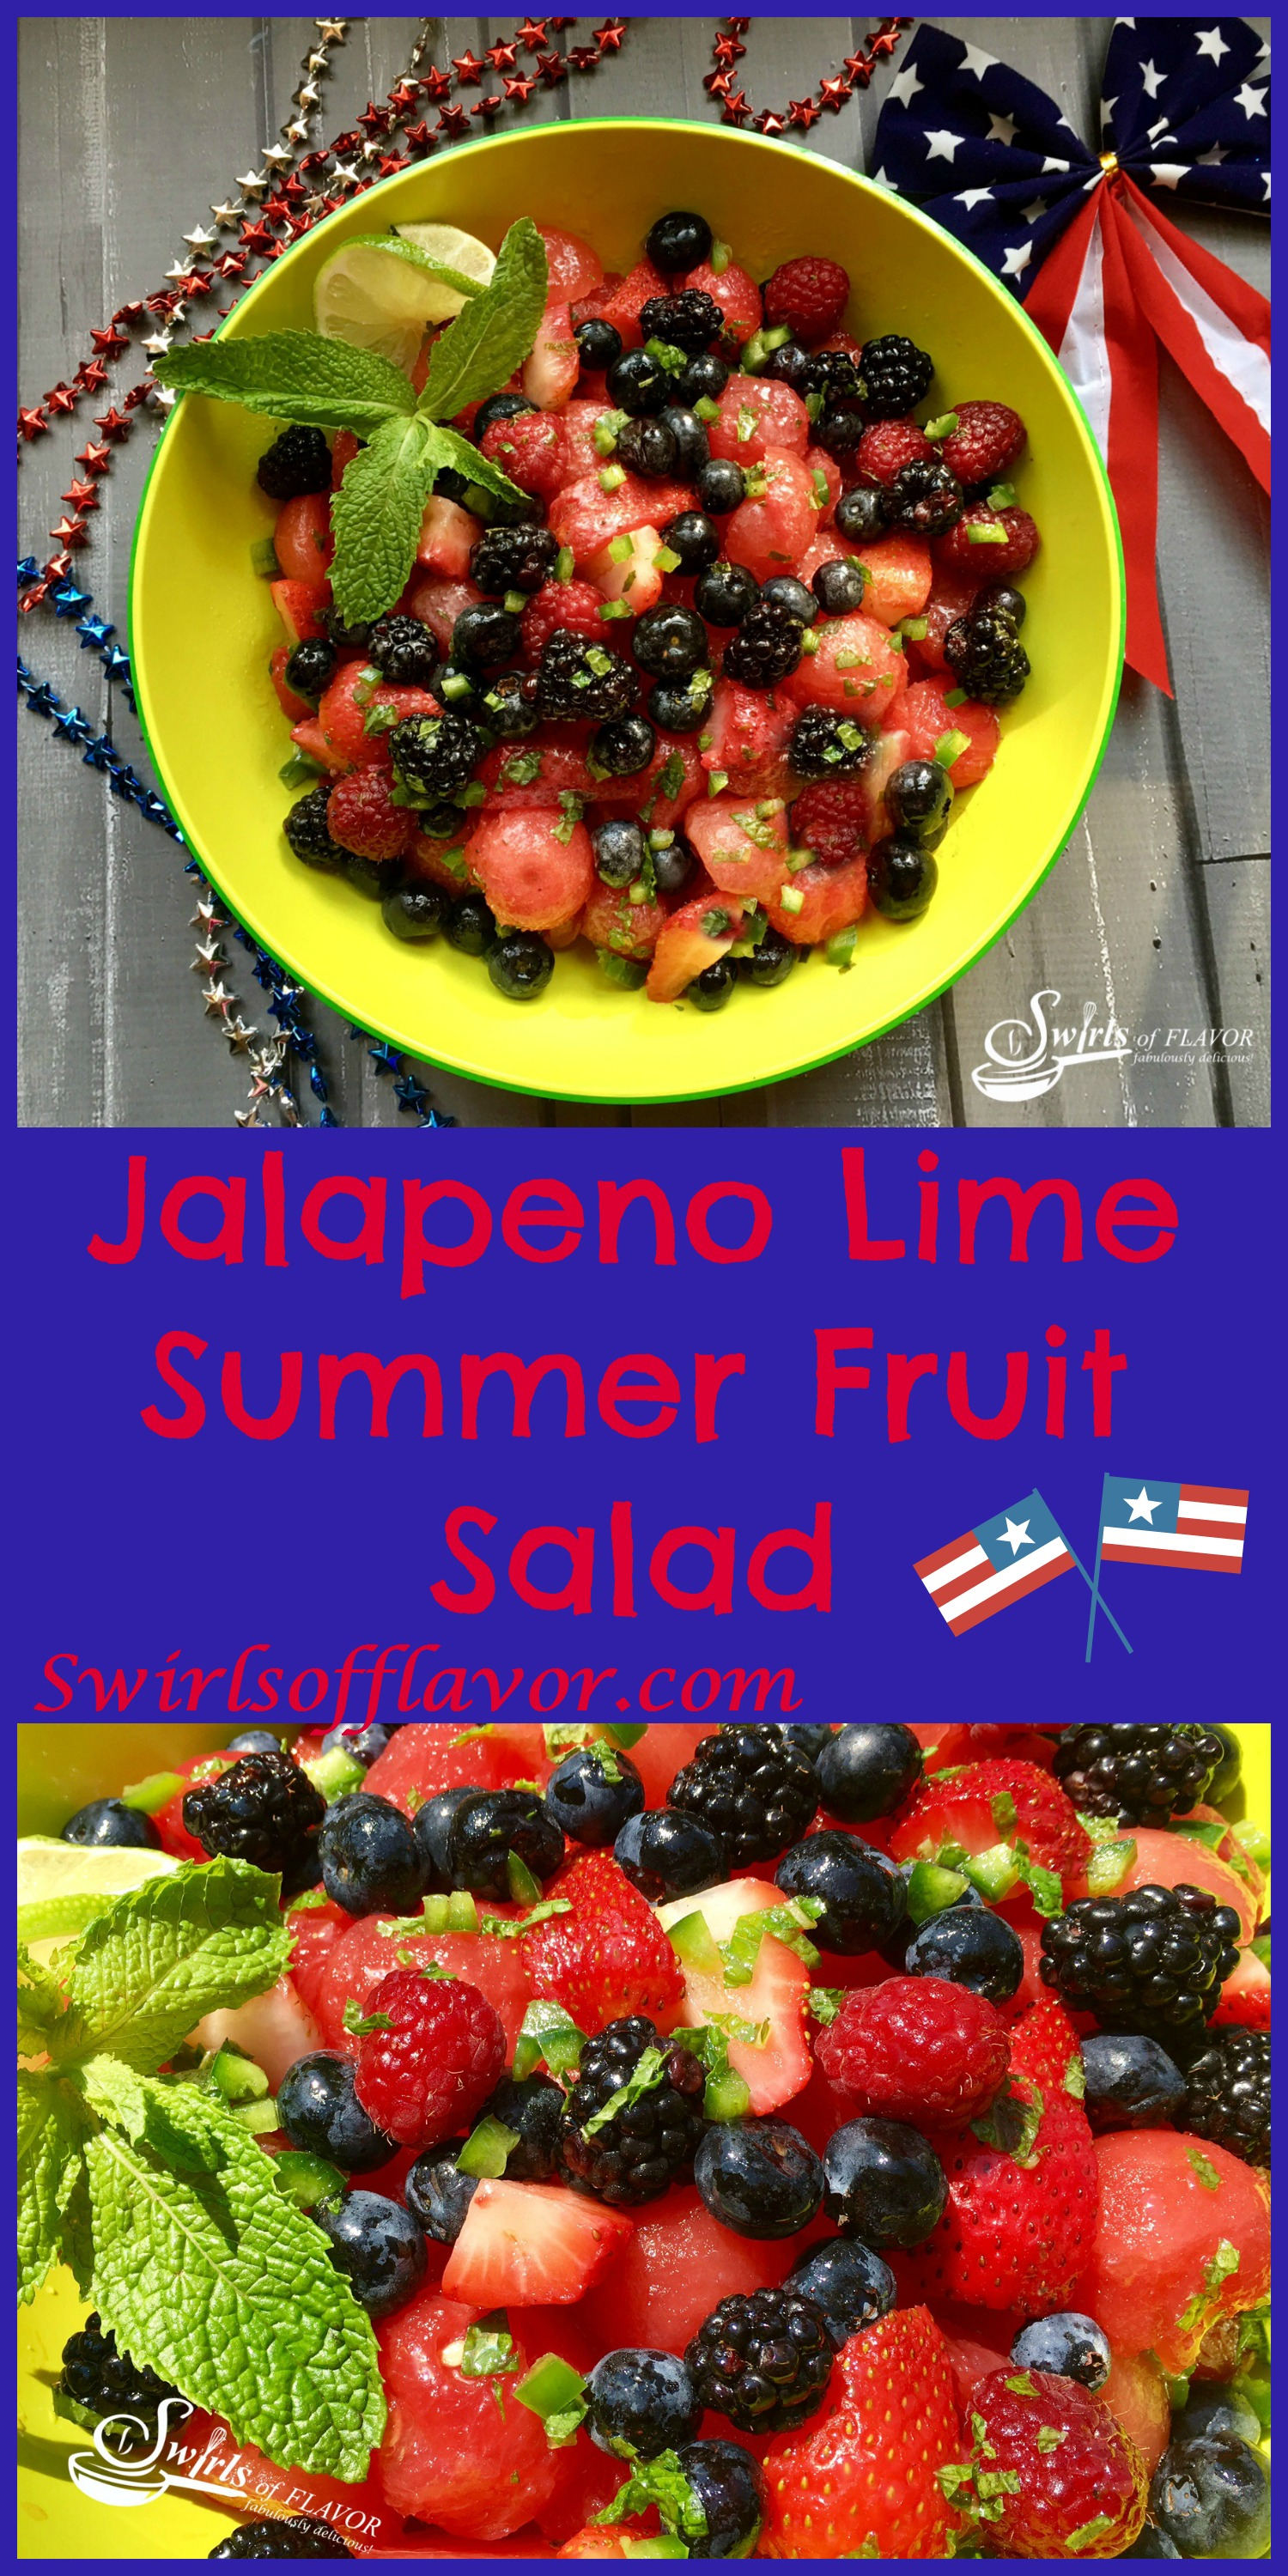 Jalapeno Lime Summer Fruit Salad is bursting with sweet juicy berries and watermelon, fresh mint, zesty lime and a hint of jalapeno heat! strawberry | blueberry | raspberry | blackberry | berry | watermelon | summer fruit | salad | brunch | picnic | barbecue | lime | mint | easy recipe | summer fruit | fruit salad | #swirlsofflavor